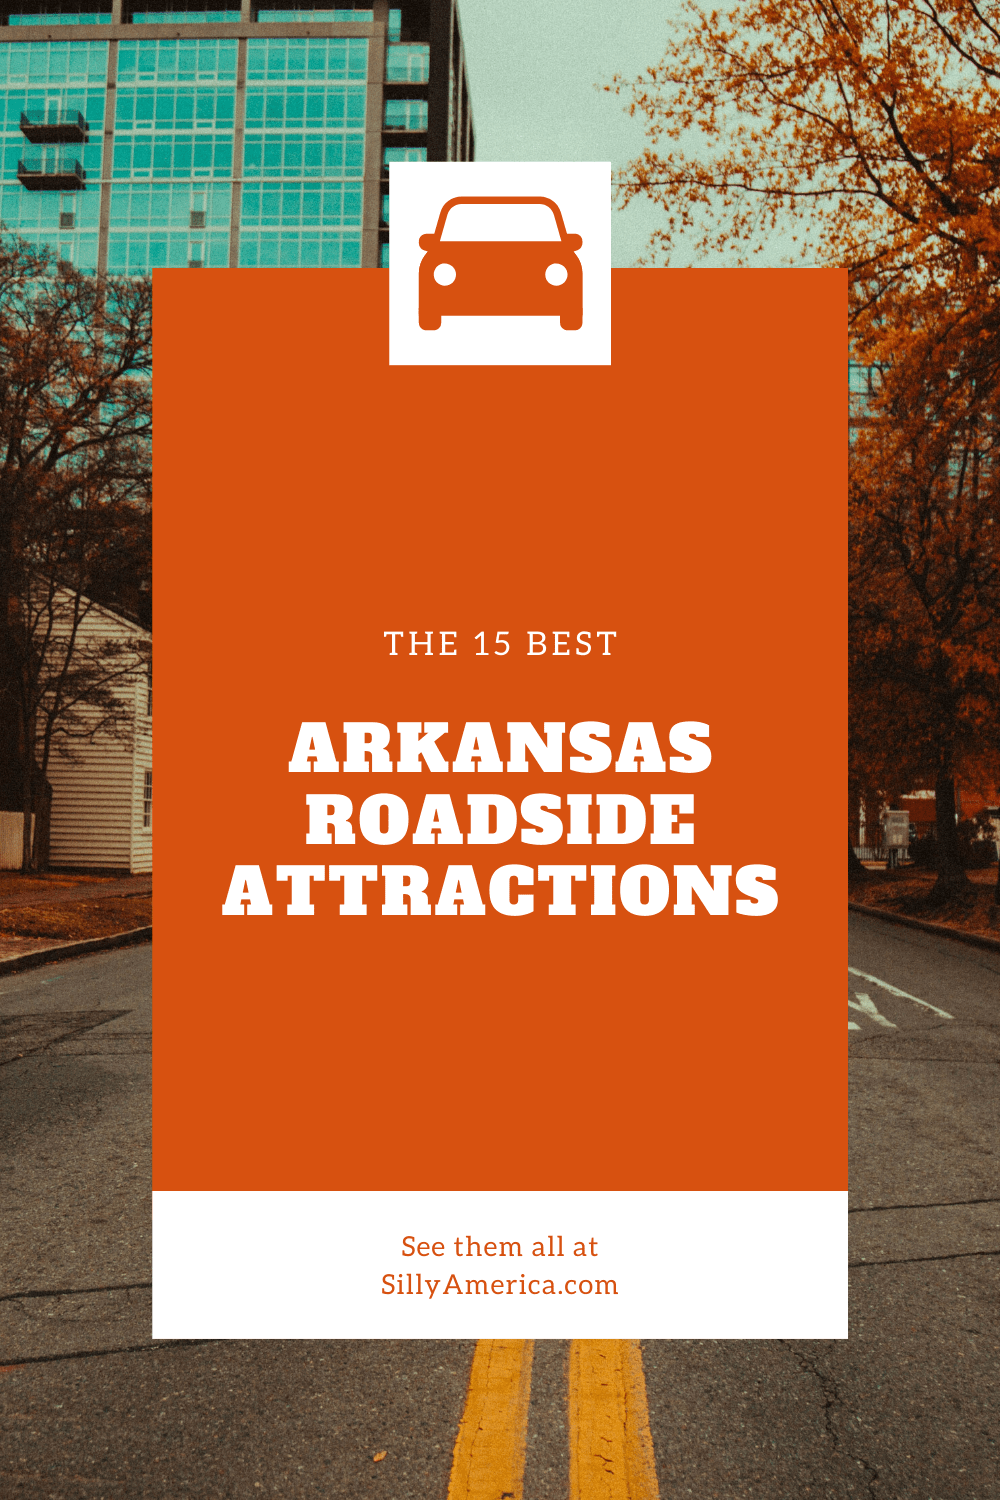 The best Arkansas roadside attractions to visit on an Arkansas road trip with kids or adults. Add these roadside oddities and road trip stops to your travel bucket list, itinerary, or vacation route map! #ArkansasRoadsideAttractions #ArkansasRoadTrip #ArkansasTravel #BeautifulPlacesinArkansas #ArkansasBucketLists #ArkansasWithKids #WeirdRoadsideAttractions